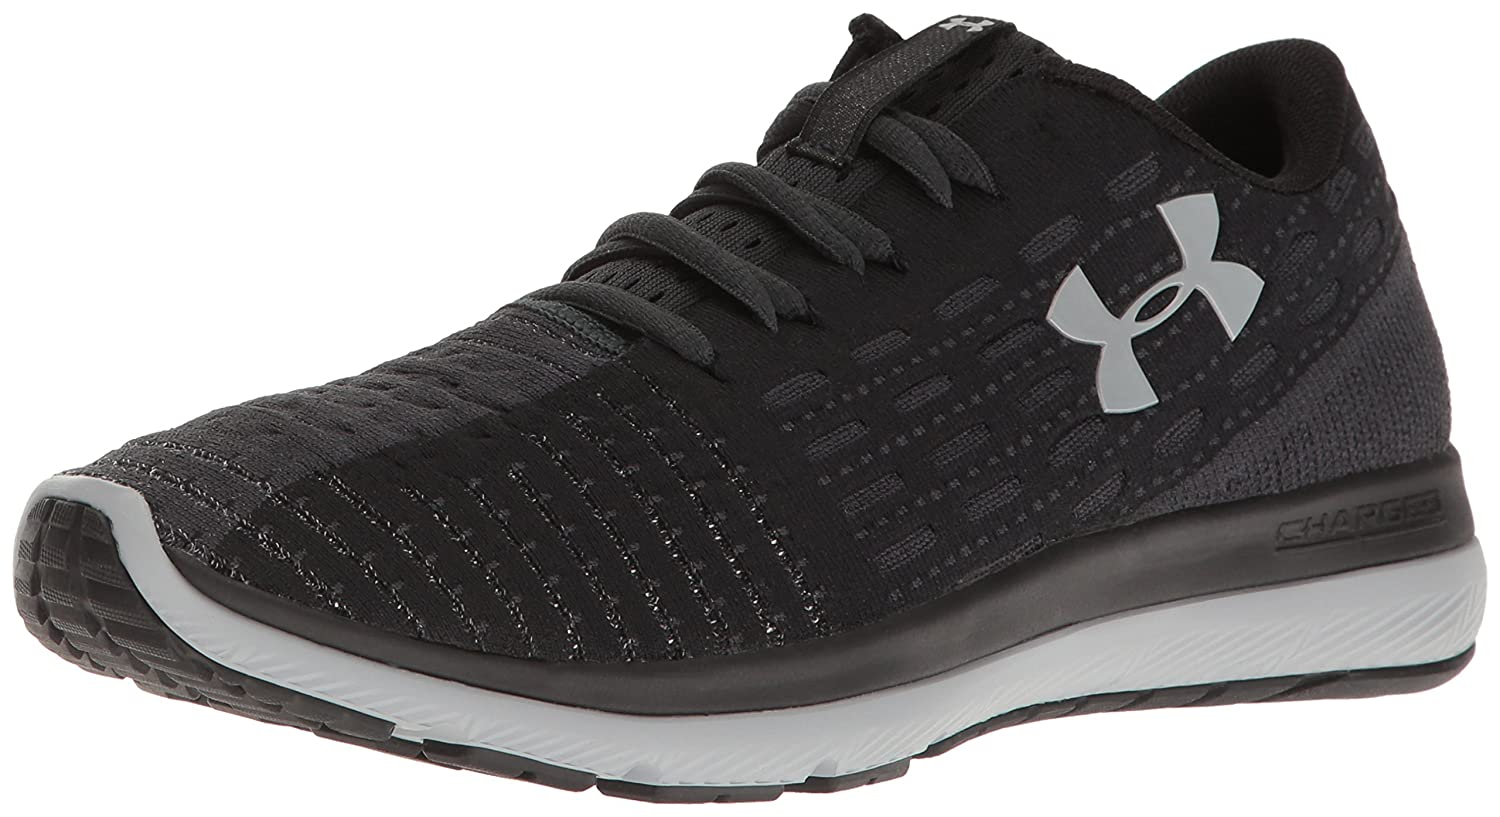 Under Armour Speedform Gemini 3 Chaussure De Course à Pied - SS17-41 3StZ6p